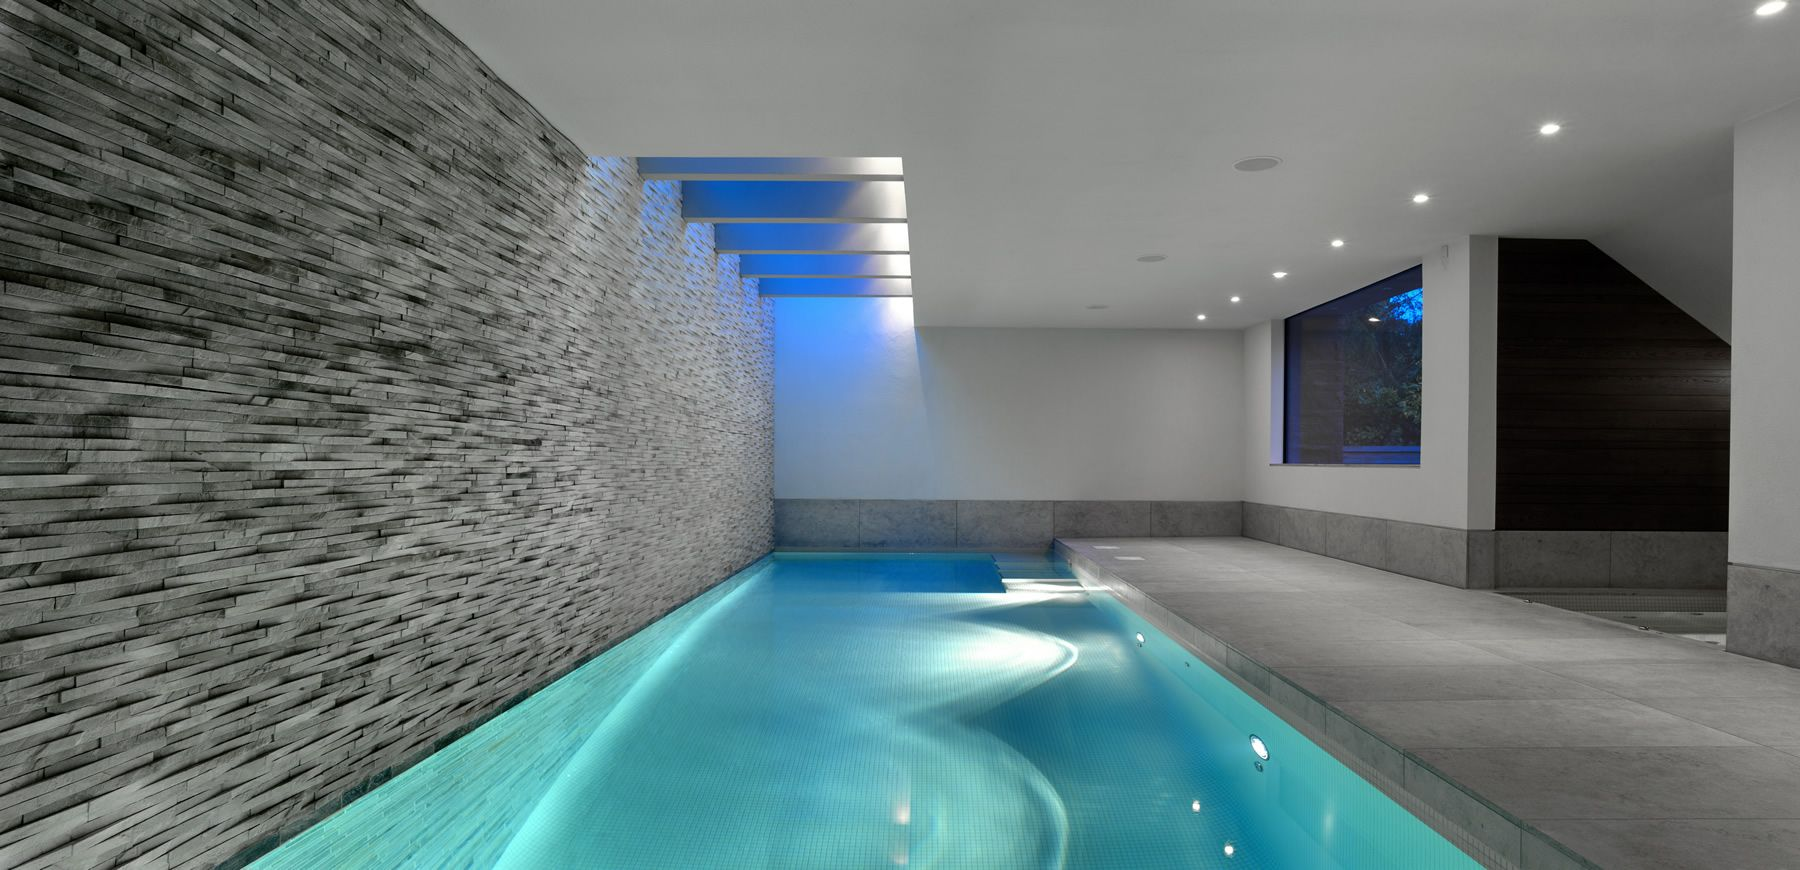 Swimming pool indoor  Astounding Indoor Swimming Pool Design # Image 381 50 Indoo Pool ...